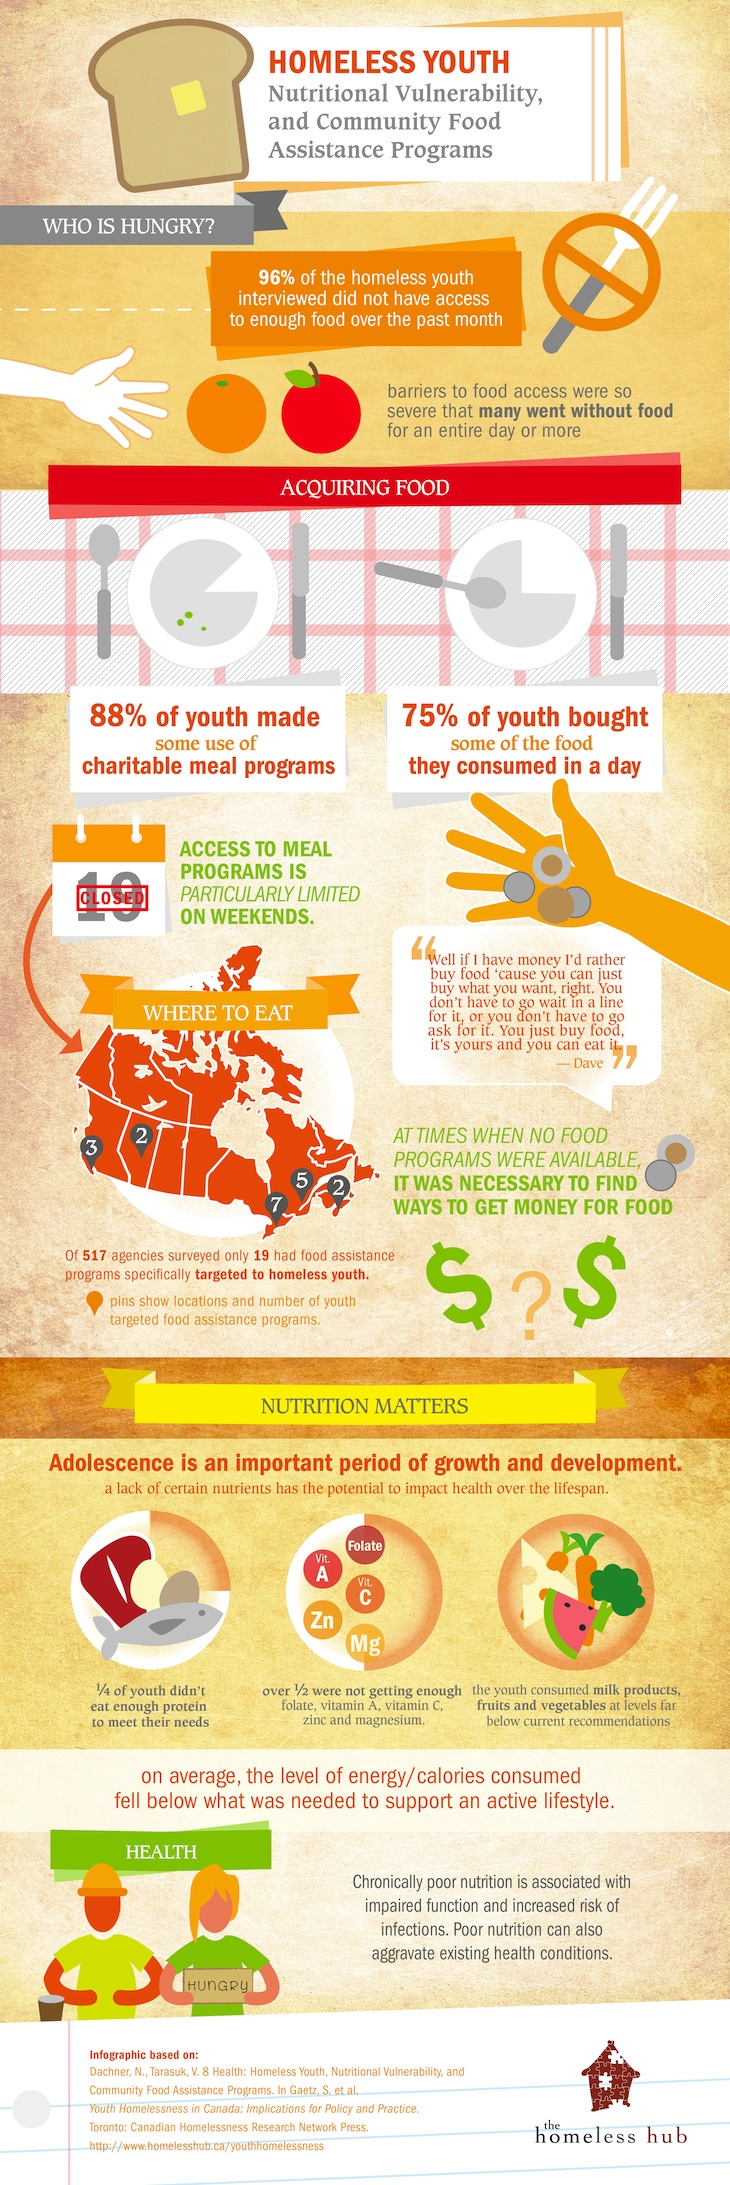 Homeless Youth, Nutritional Vulnerability, and Community Food Assistance Programs info graphic based on chapter 8 of the Youth Homelessness book.